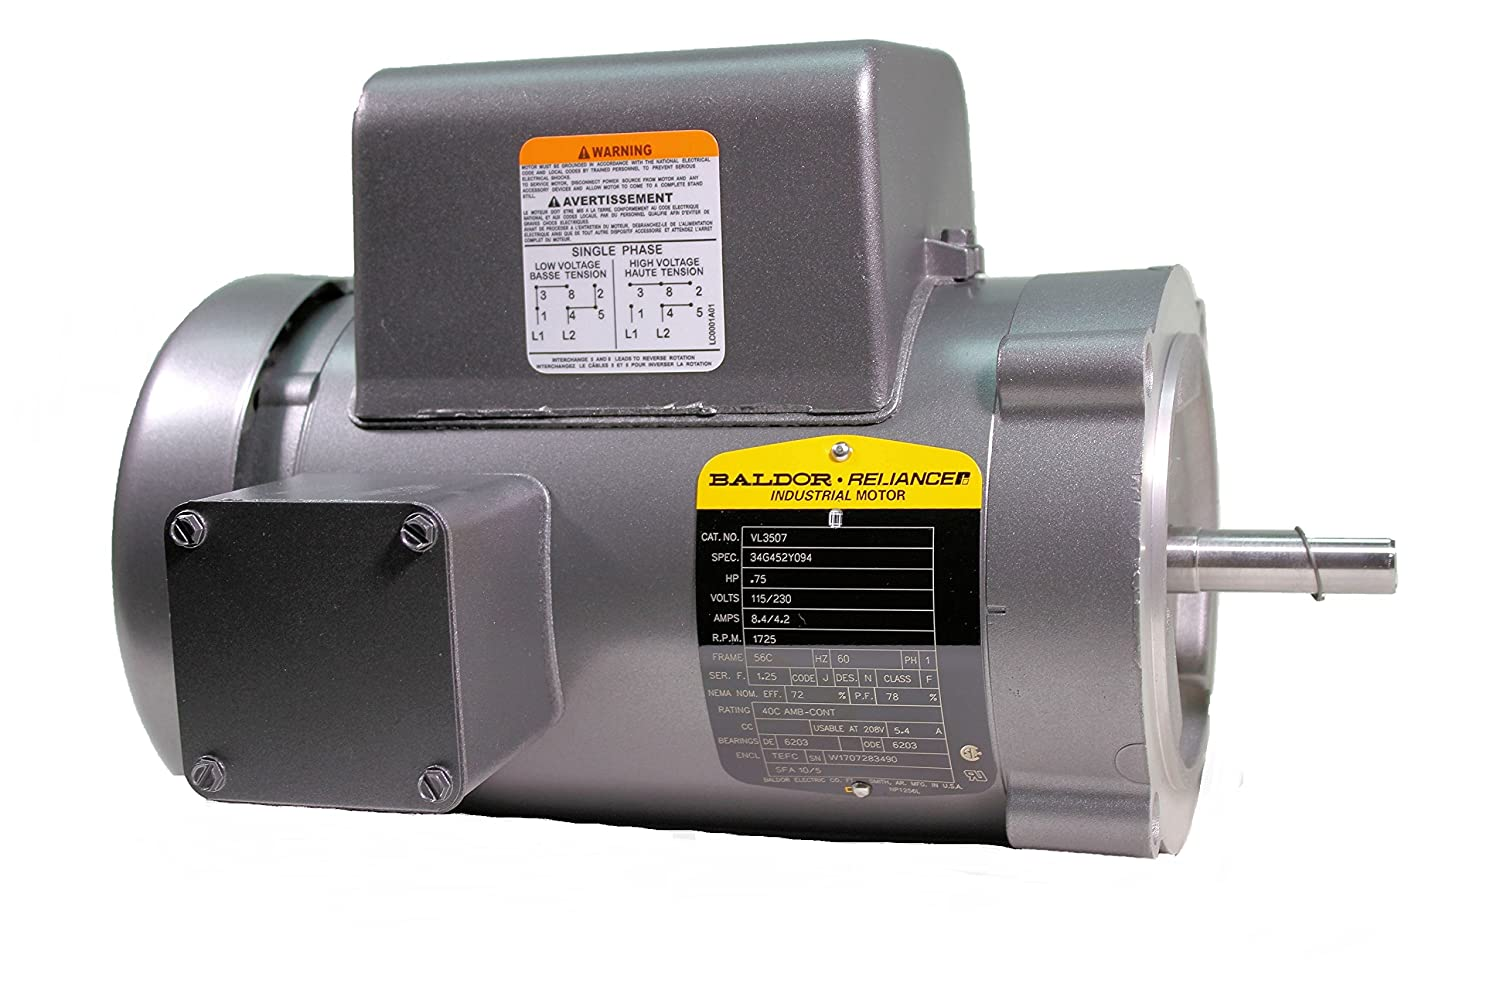 Baldor VL3507 General Purpose AC Motor, Single Phase, 56C Frame, TEFC Enclosure, 3/4Hp Output, 1725rpm, 60Hz, 115/230V Voltage